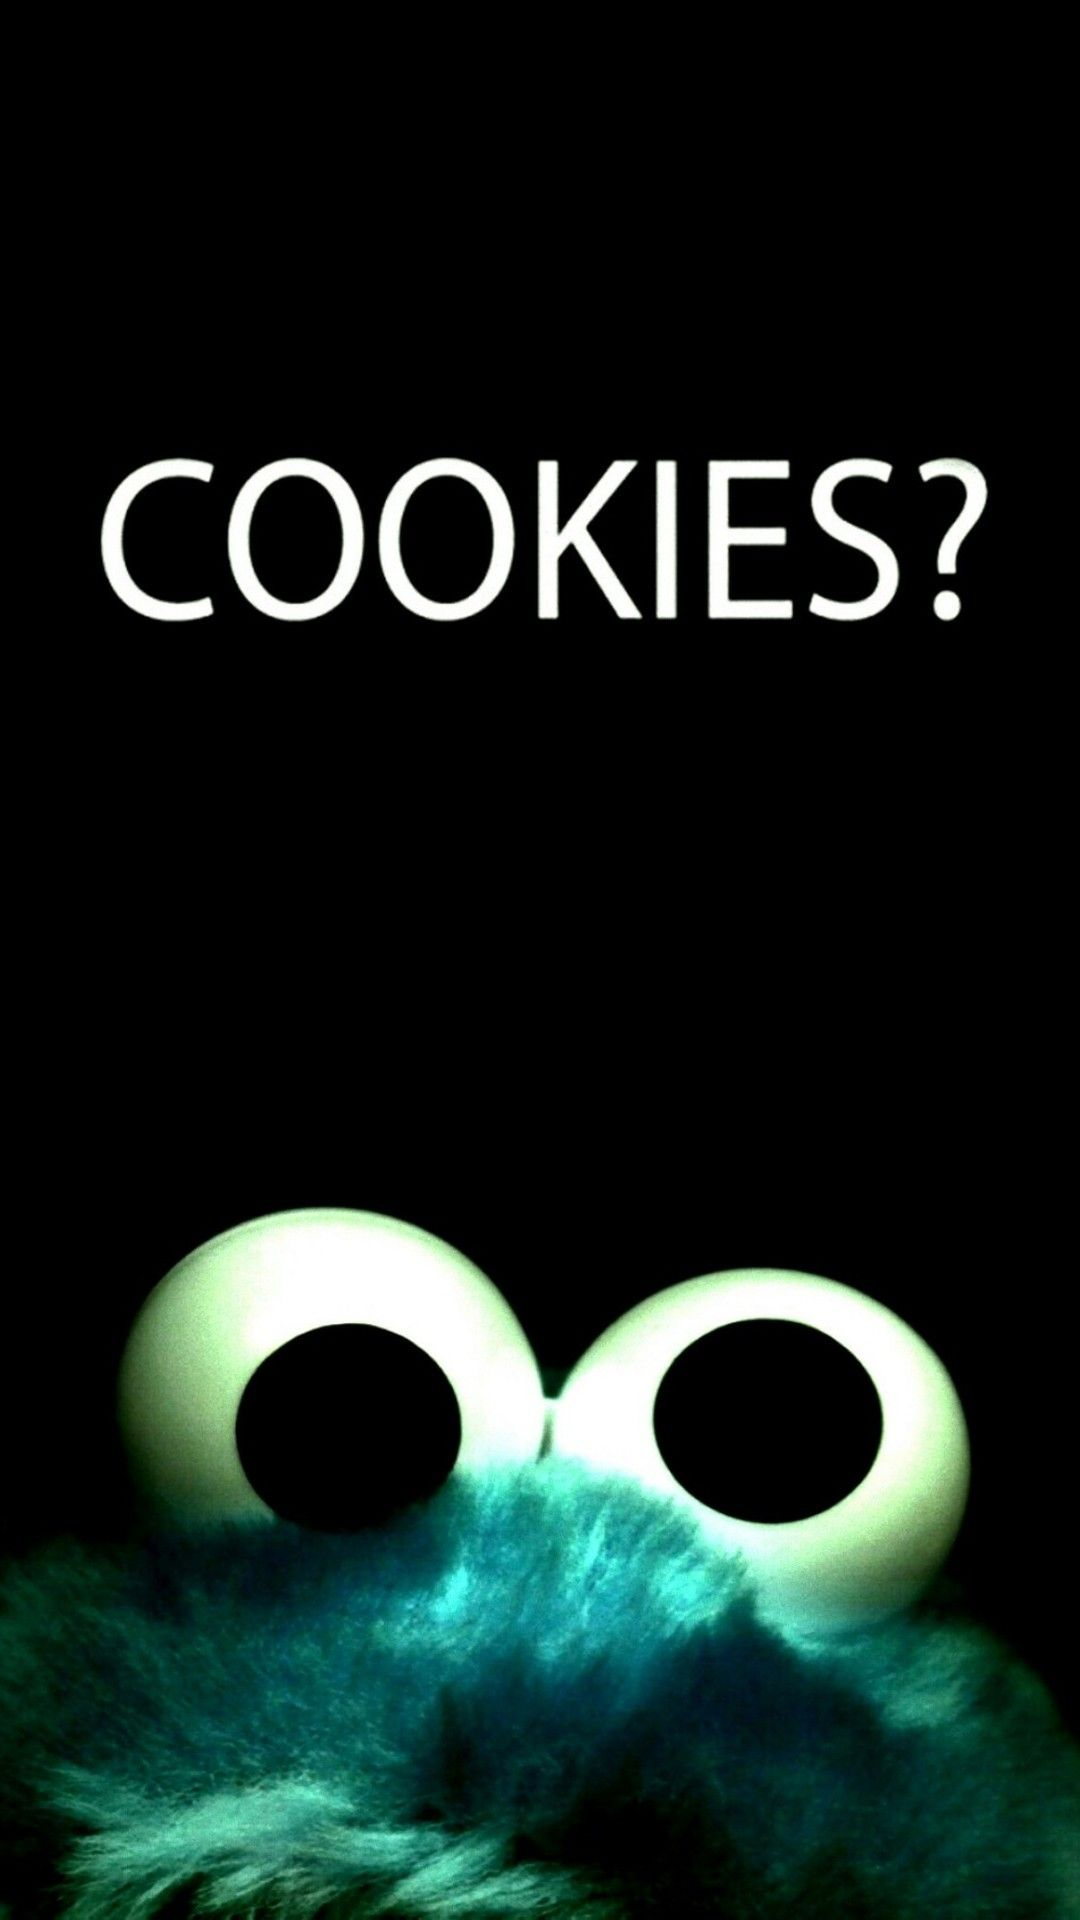 Funny Iphone Wallpapers Top Free Funny Iphone Backgrounds